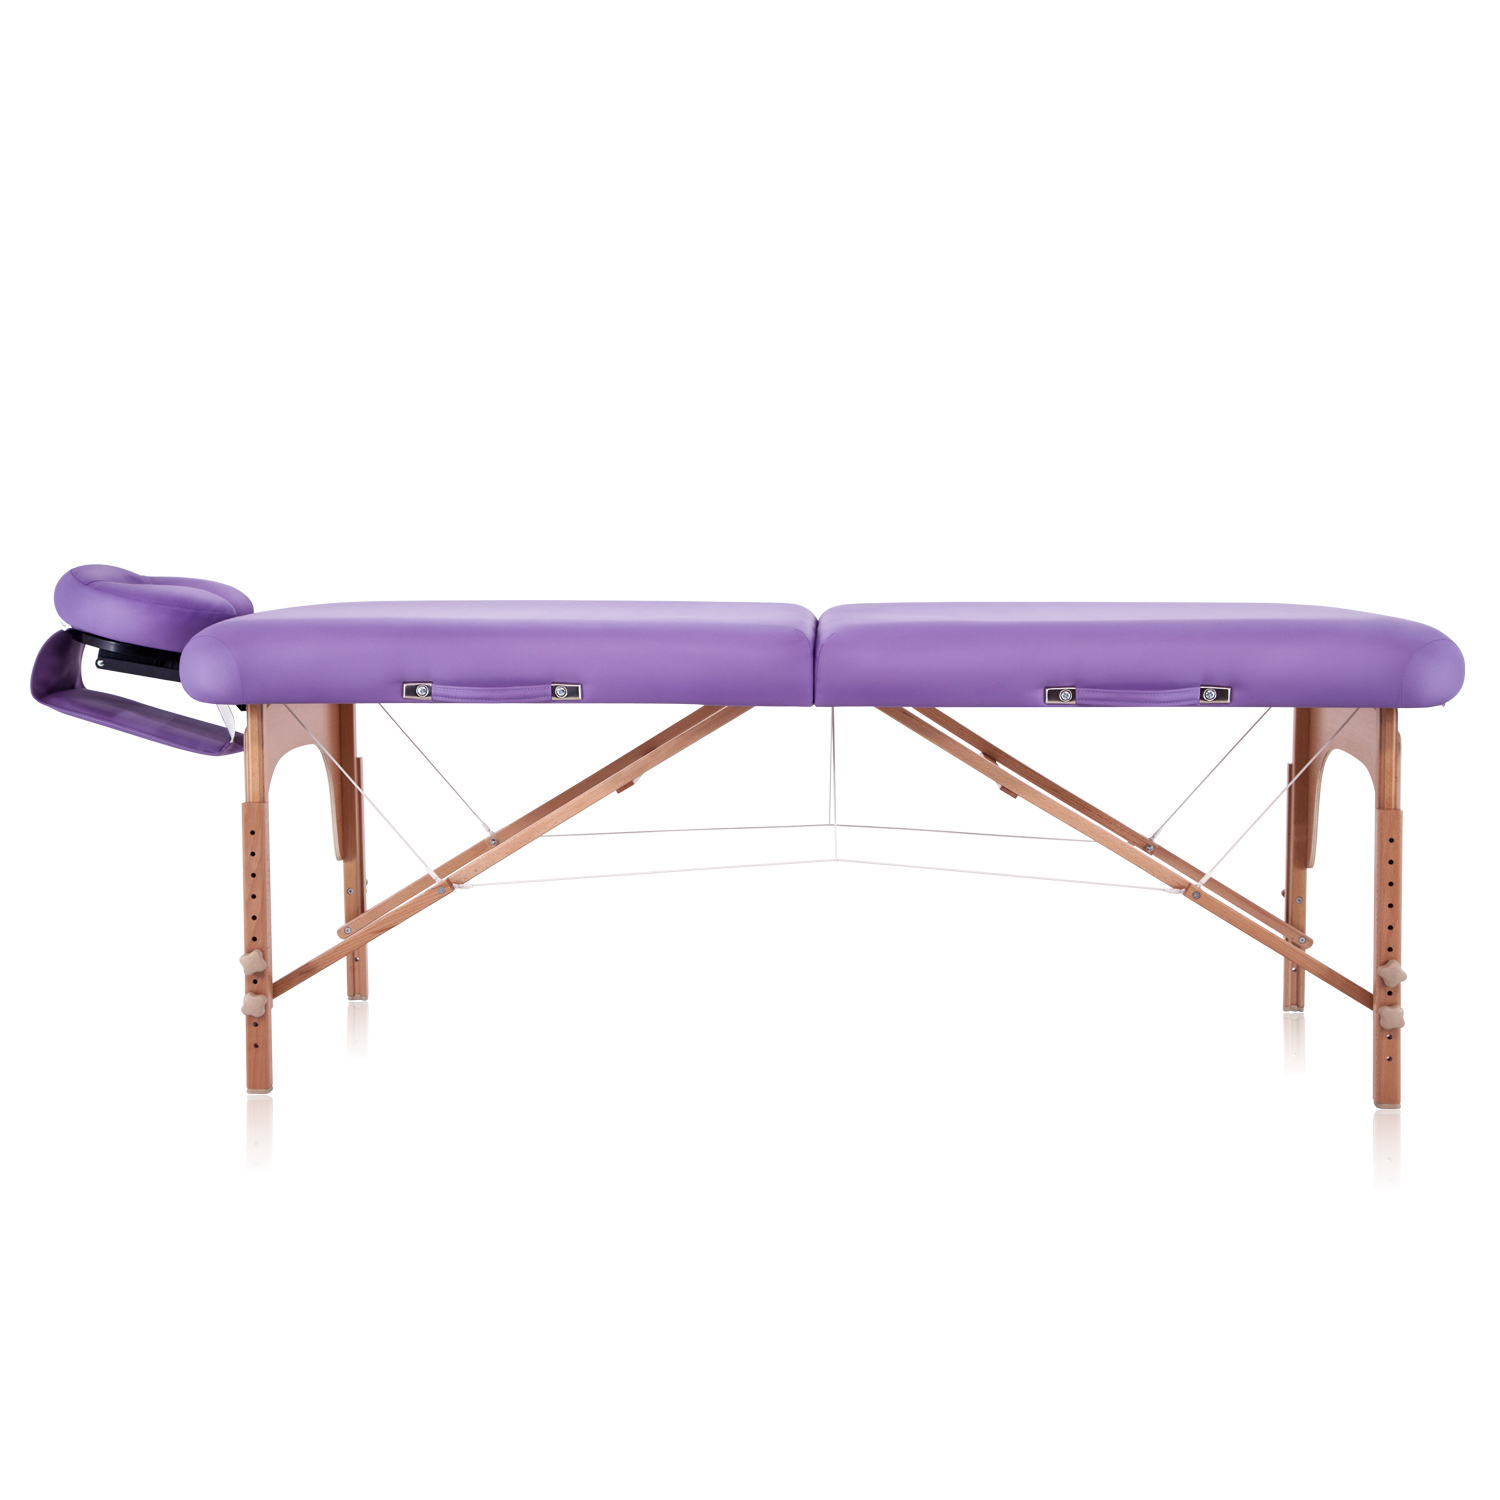 made addition product lift the massage quality comes is newest for range budget this vivi but eco to therapyvivi friendly table copy sale portable therapy